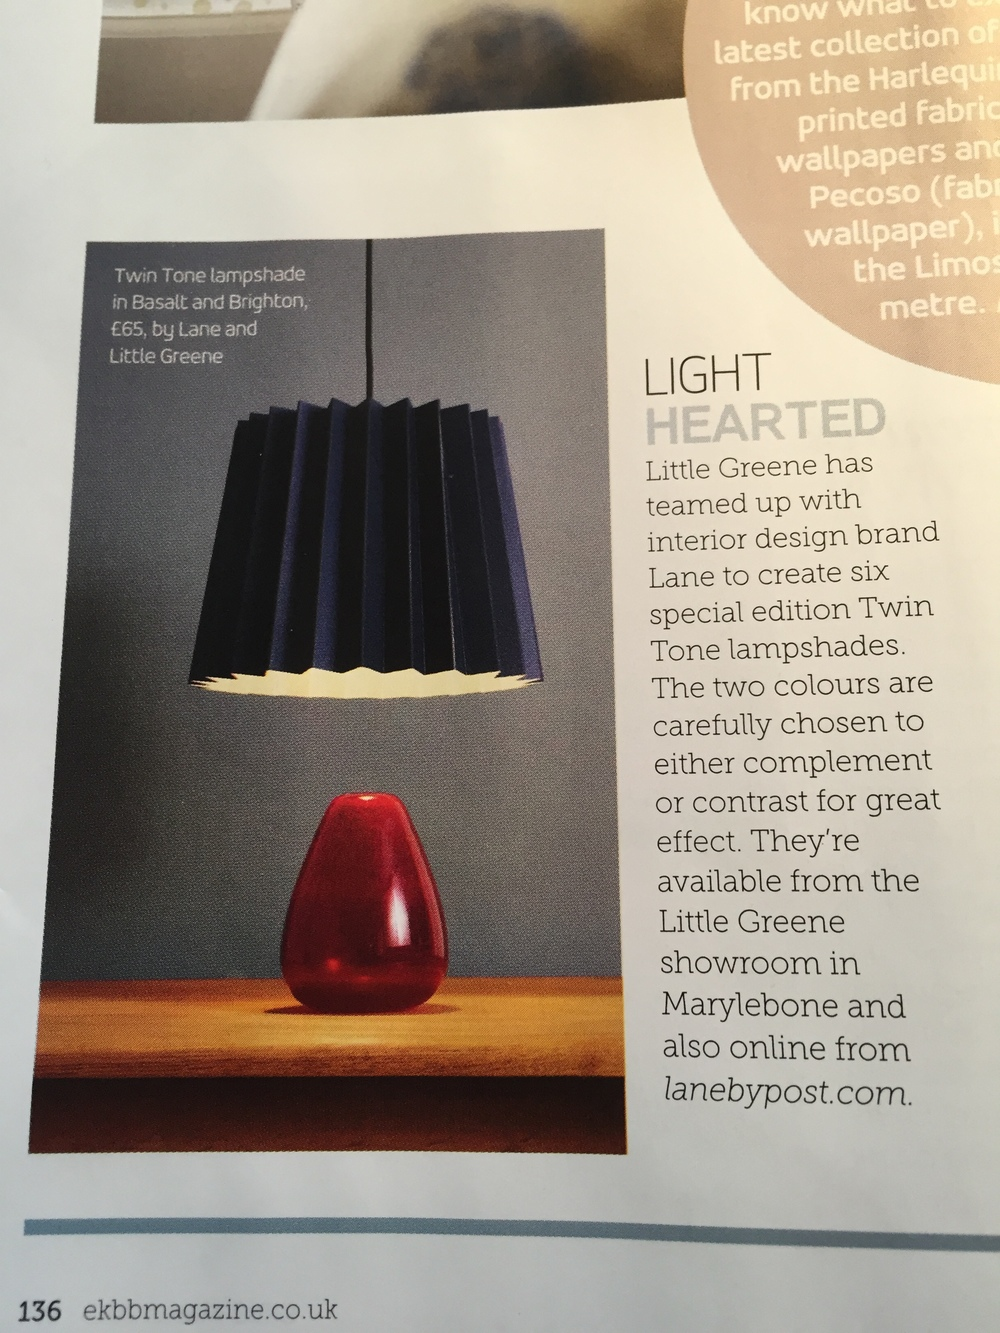 Essential Kitchens Bedrooms and Bathrooms   Basalt and Brighton Twin Tone  Lampshade   February 2015. Essential Kitchens Bedrooms Bathrooms Magazine feature Basalt and